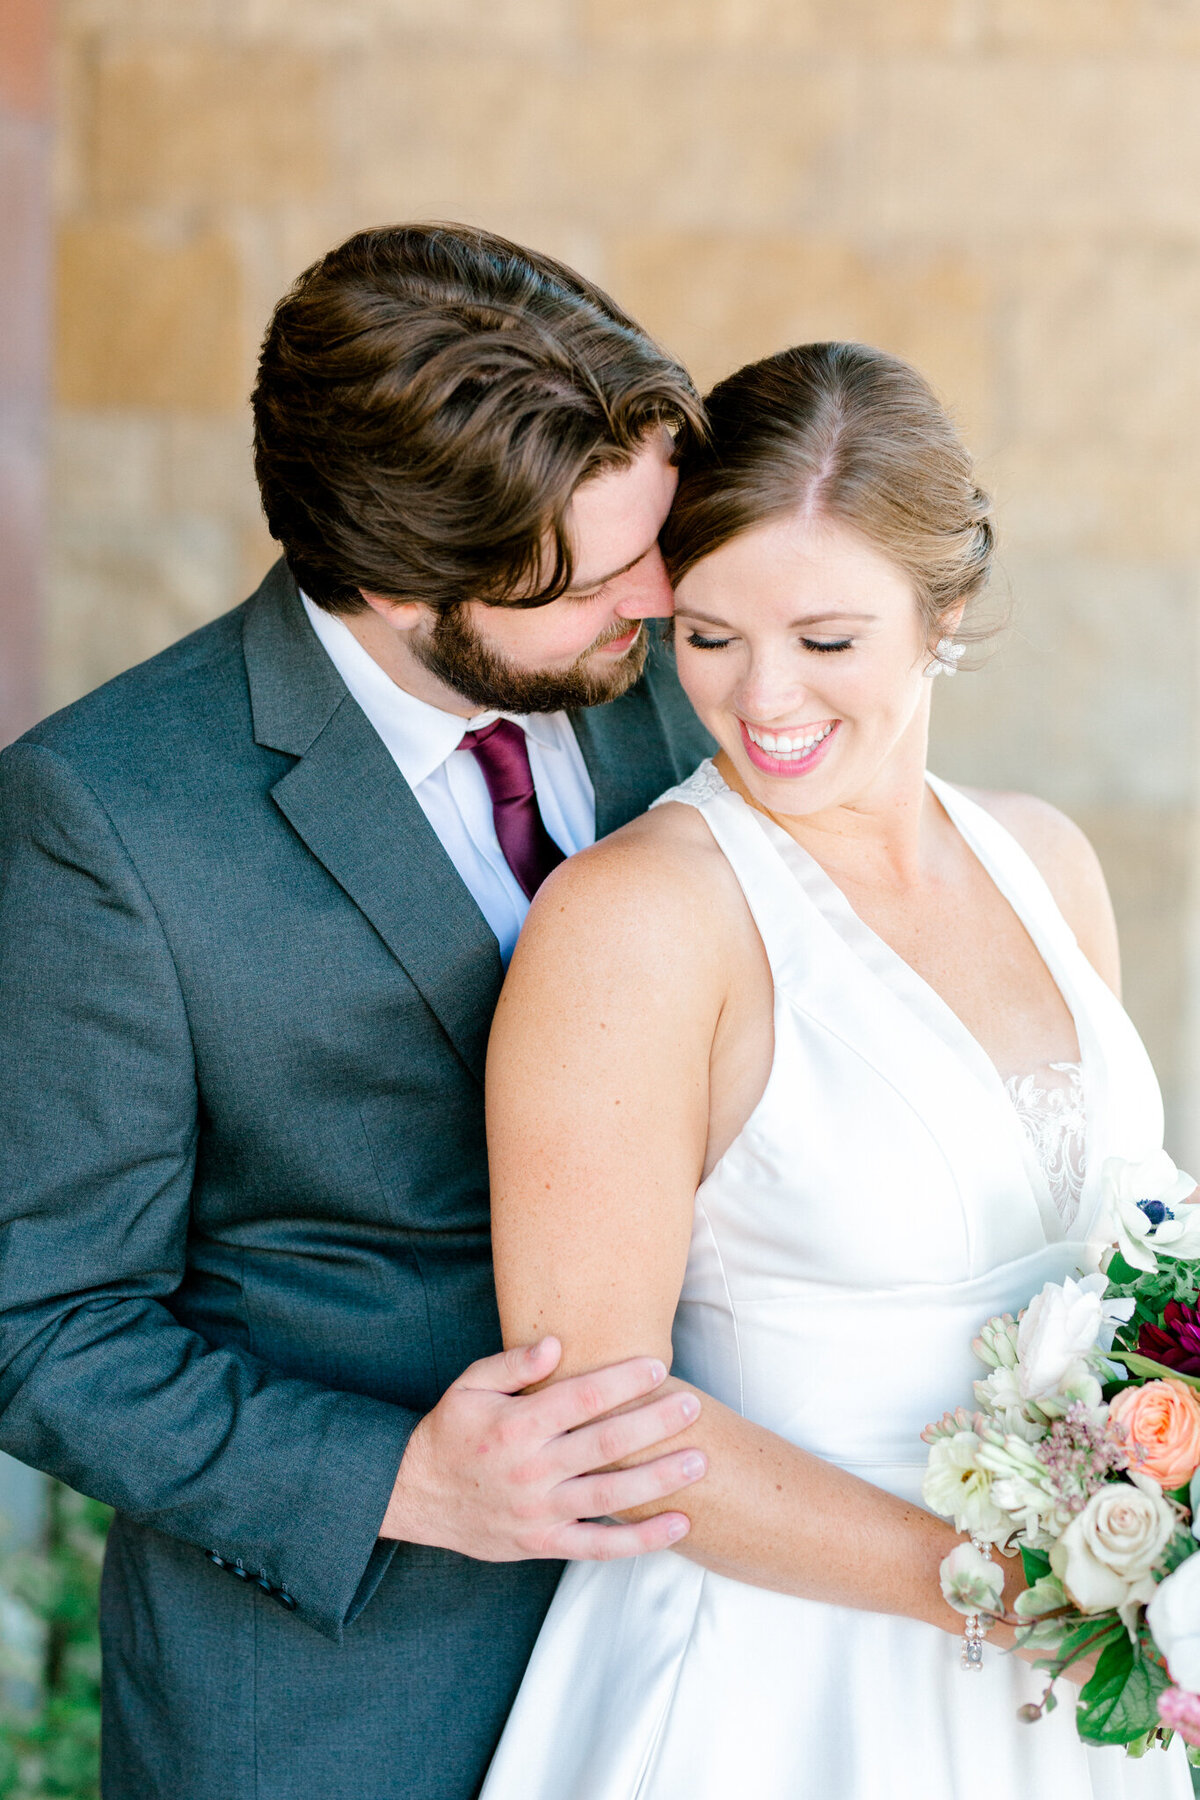 Kaylee & Michael's Wedding at Watermark Community Church | Dallas Wedding Photographer | Sami Kathryn Photography-18